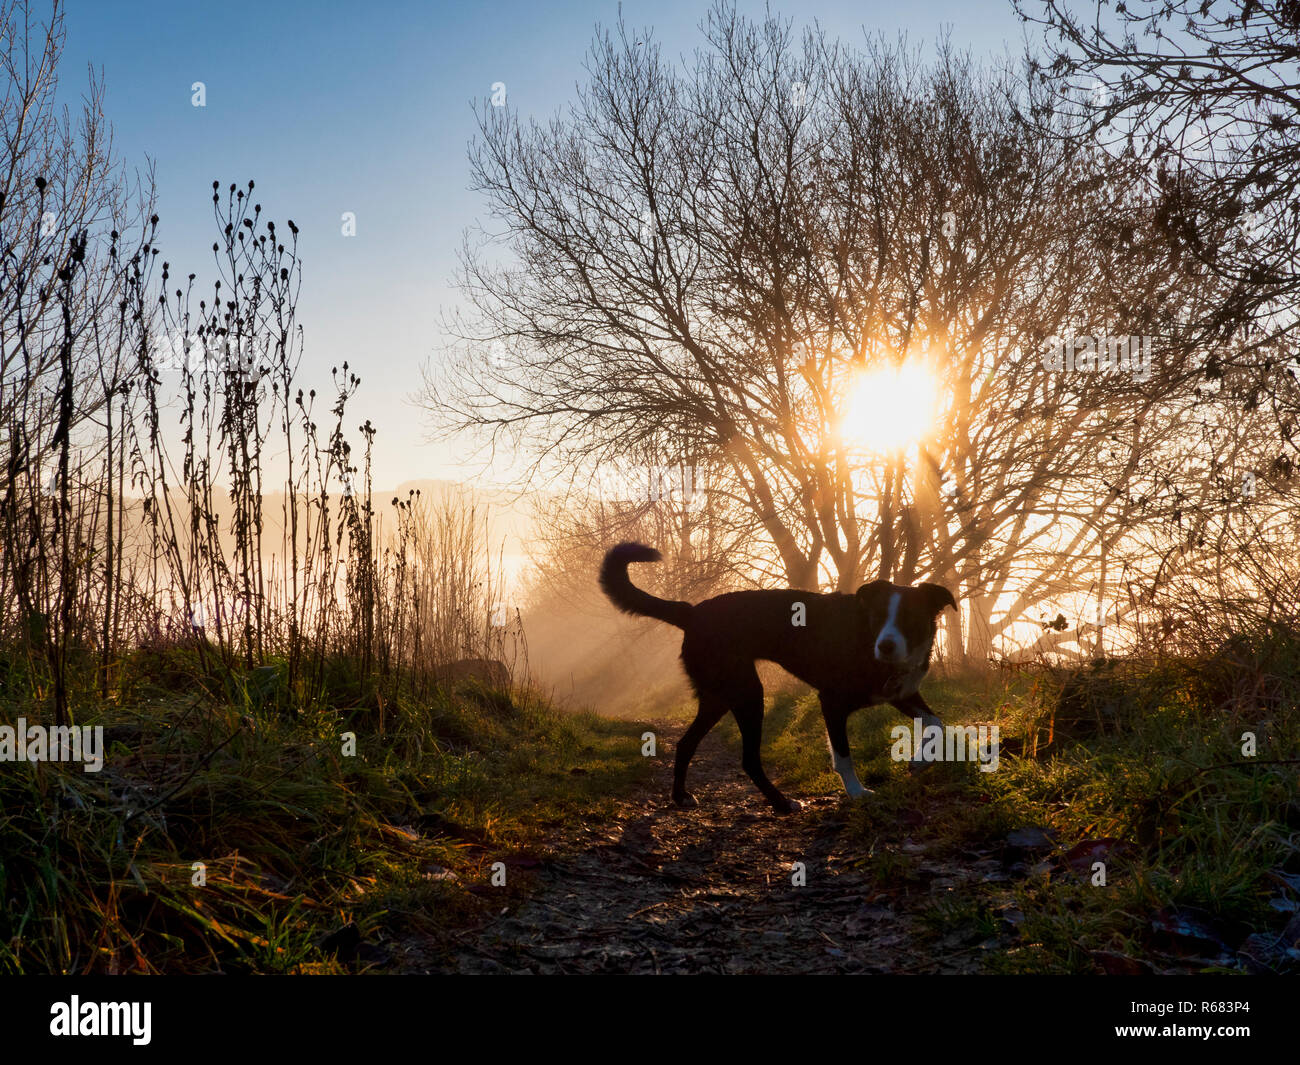 Wirksworth, Derbyshire Dales. 4th Dec 2018. UK Weather: Border Collie dog going for a walk off lead on a cold winter morning during a spectacular sunrise with cloud inversion above Wirksworth in the Derbyshire Dales, Peak District National Park Credit: Doug Blane/Alamy Live NewsStock Photo